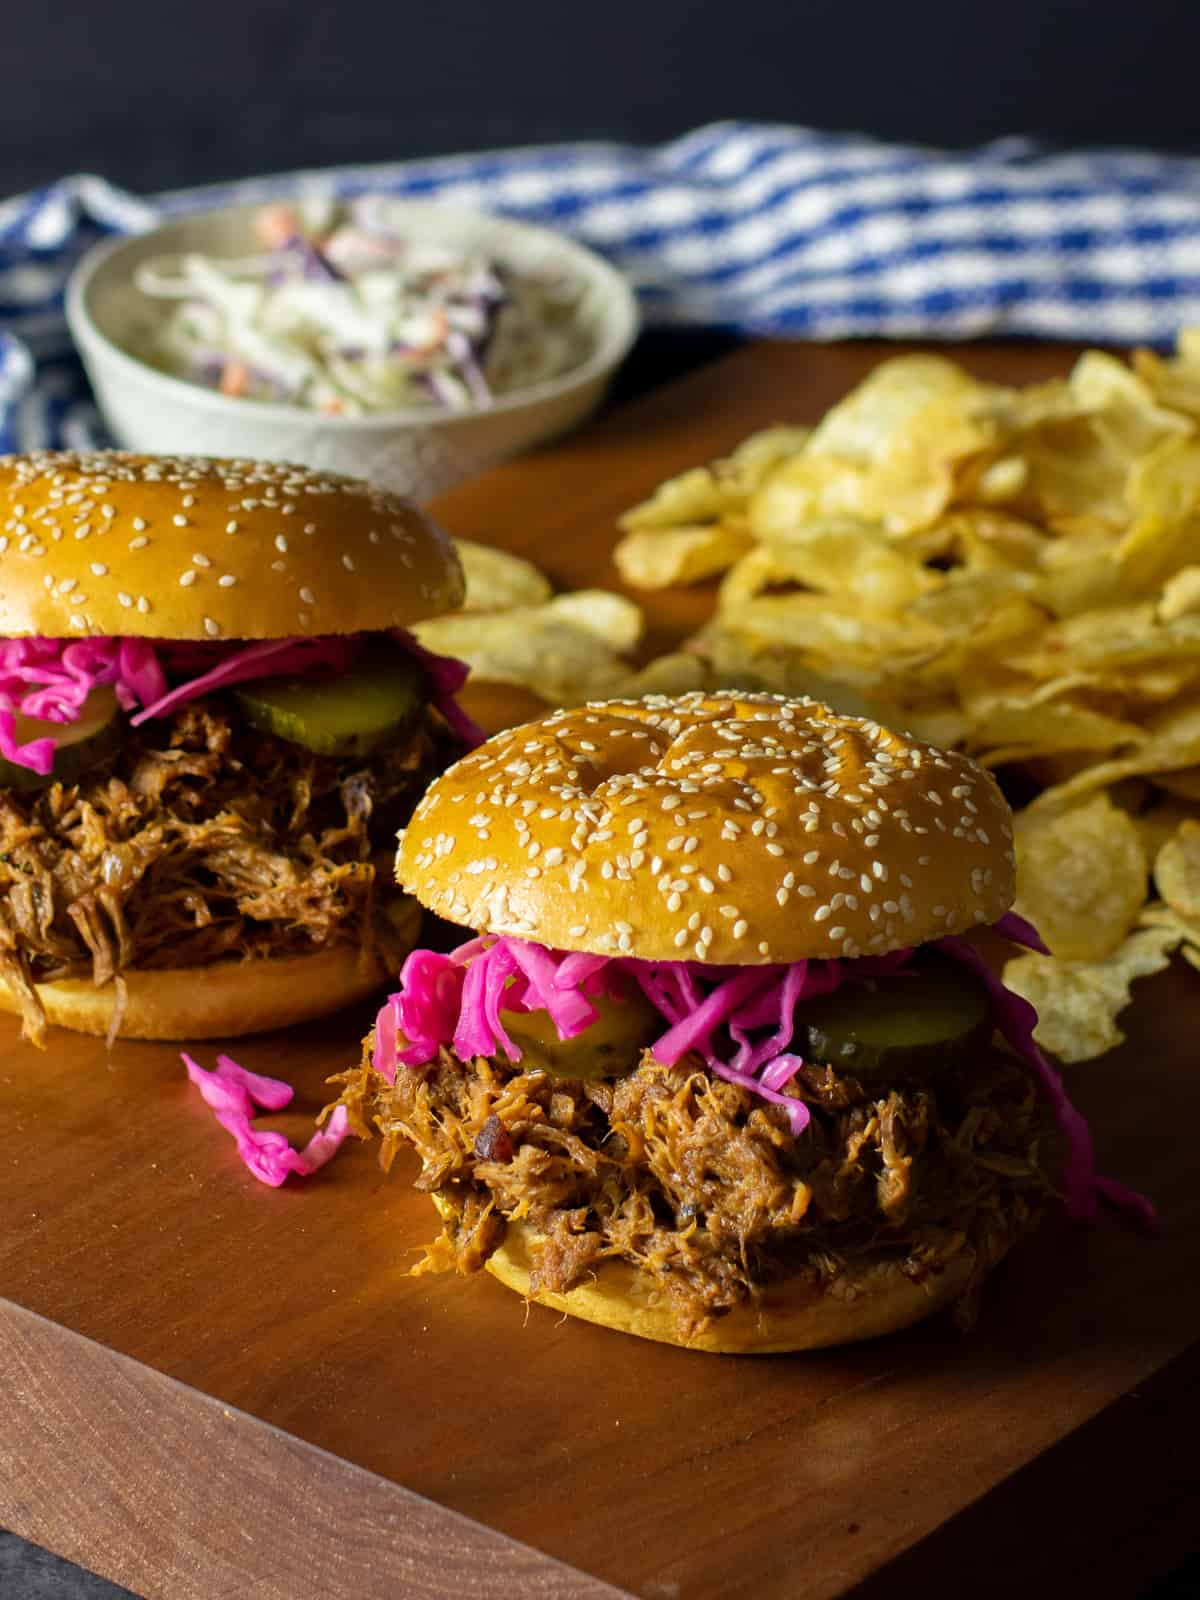 Pulled pork sandwiches on a cutting board with potato chips and cole slaw.